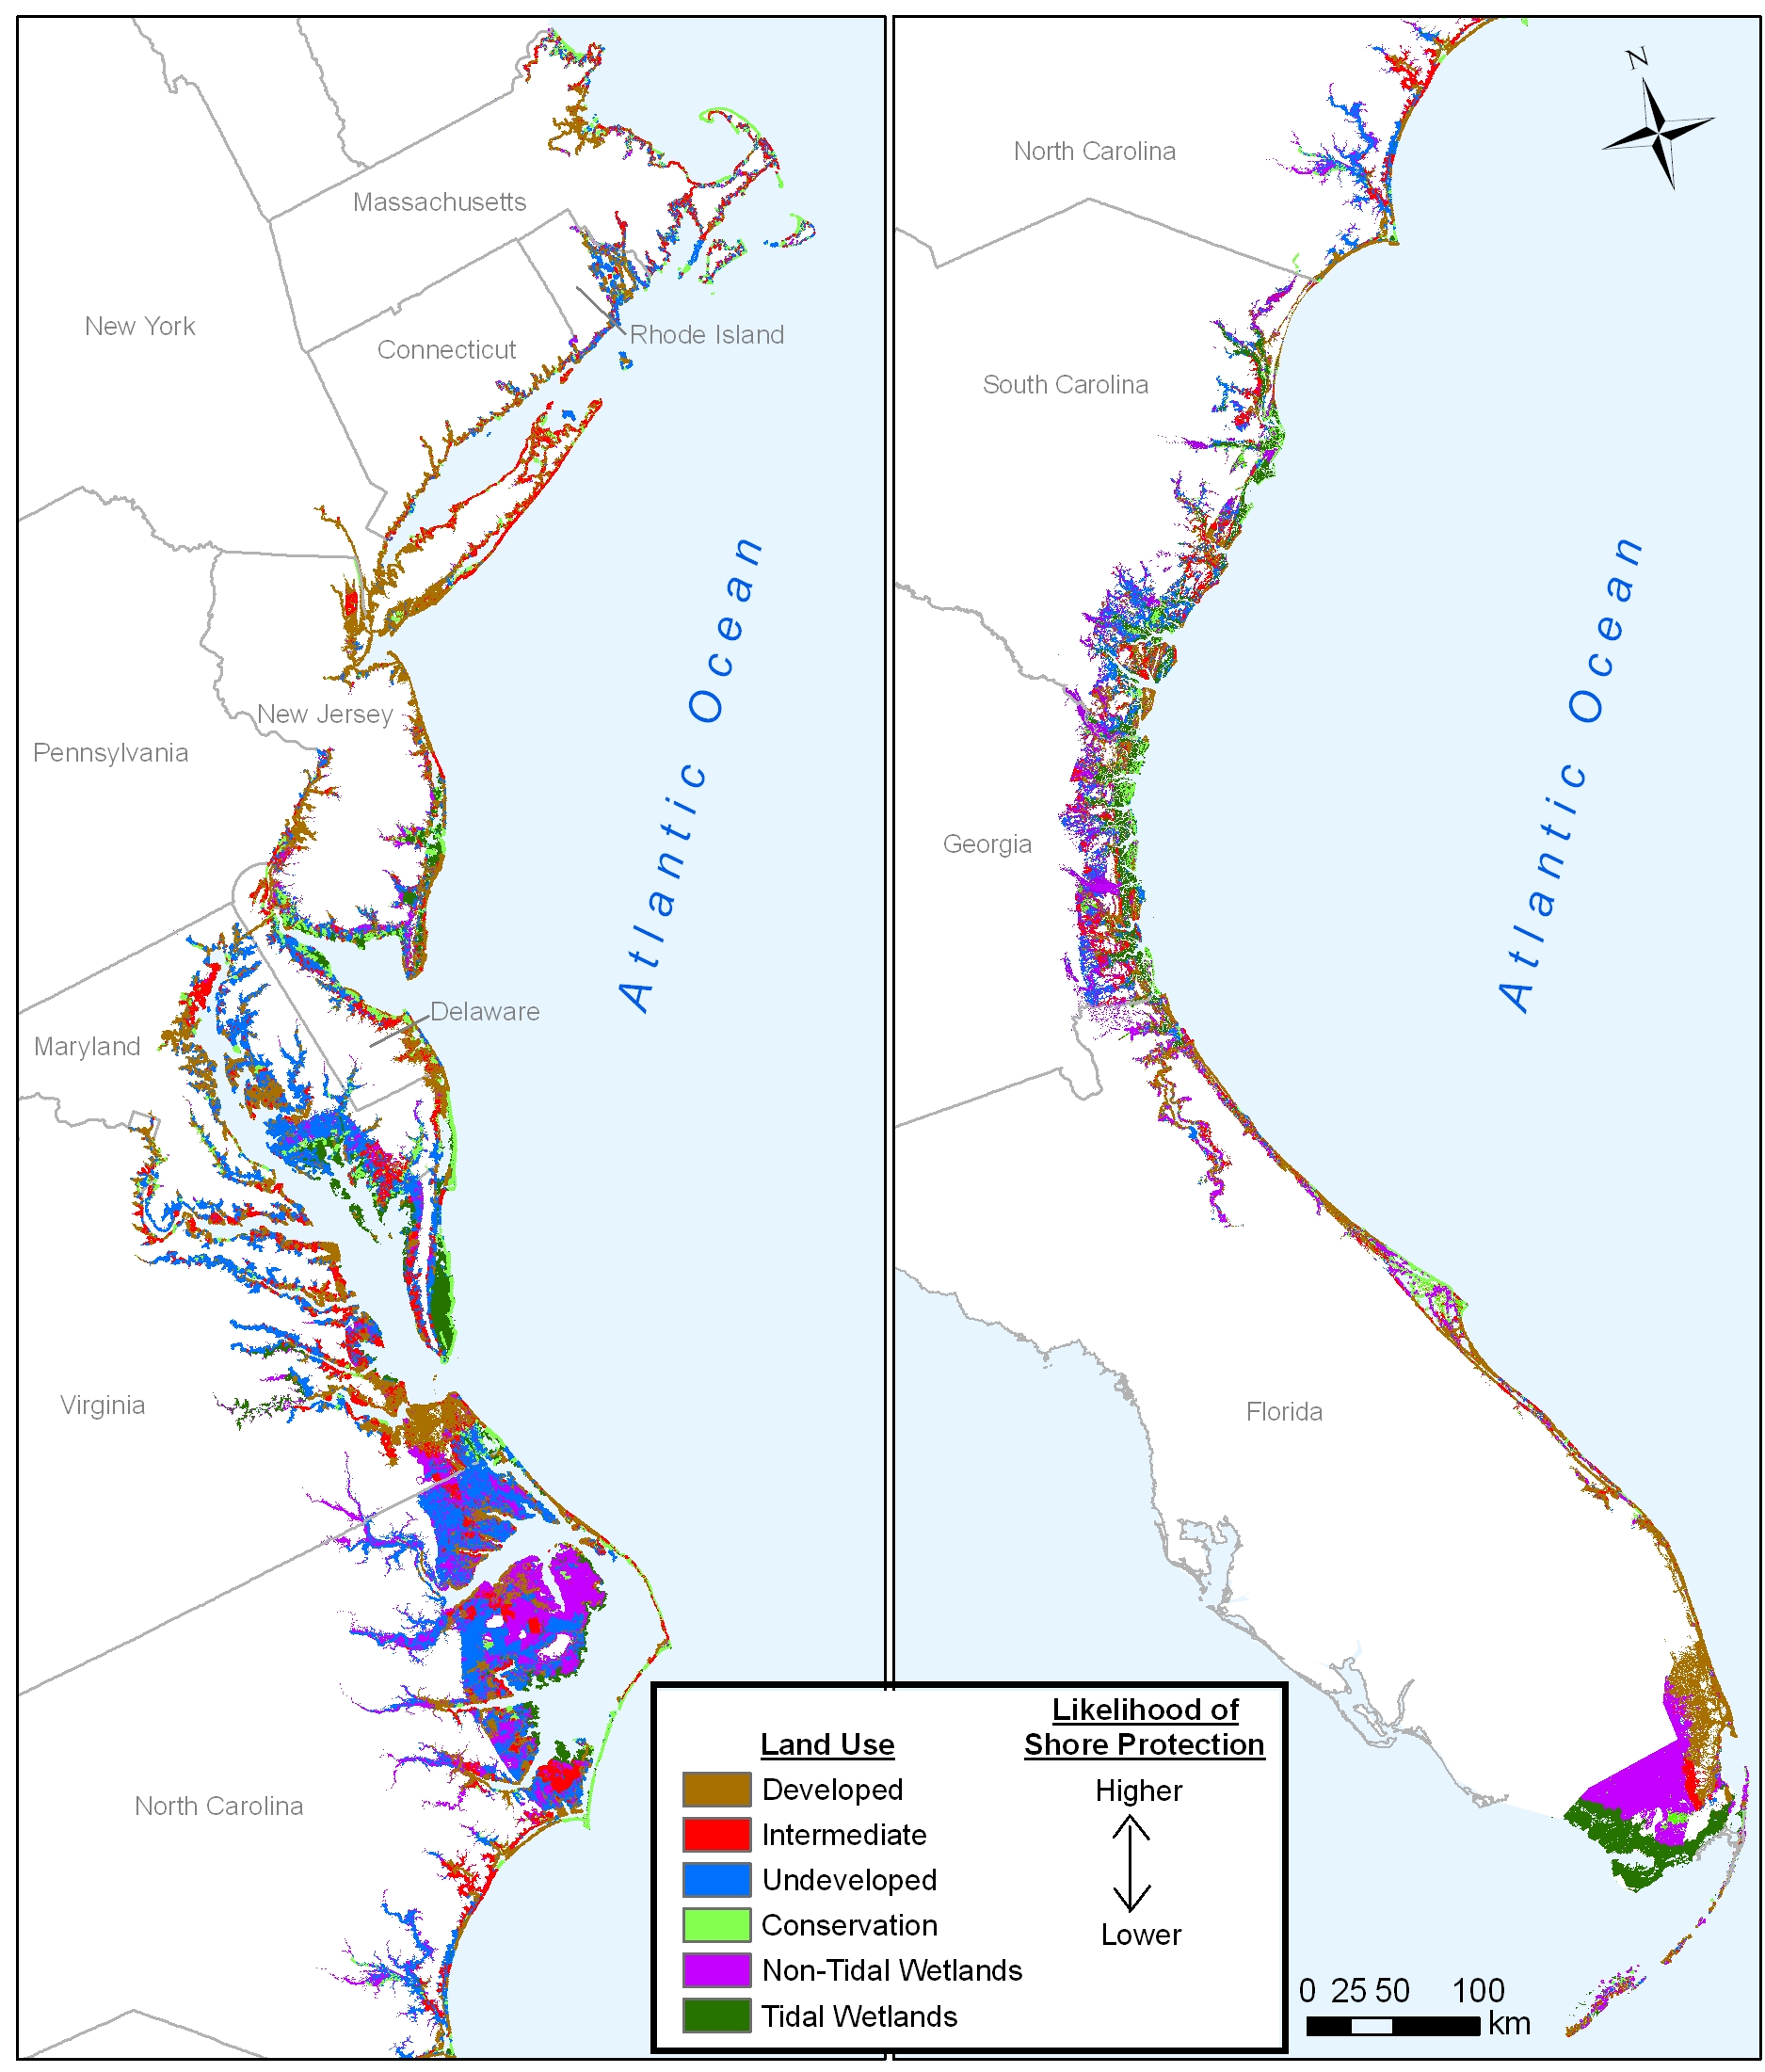 Sea Level Rise Planning Maps Likelihood Of Shore Protection In - Us sea level map